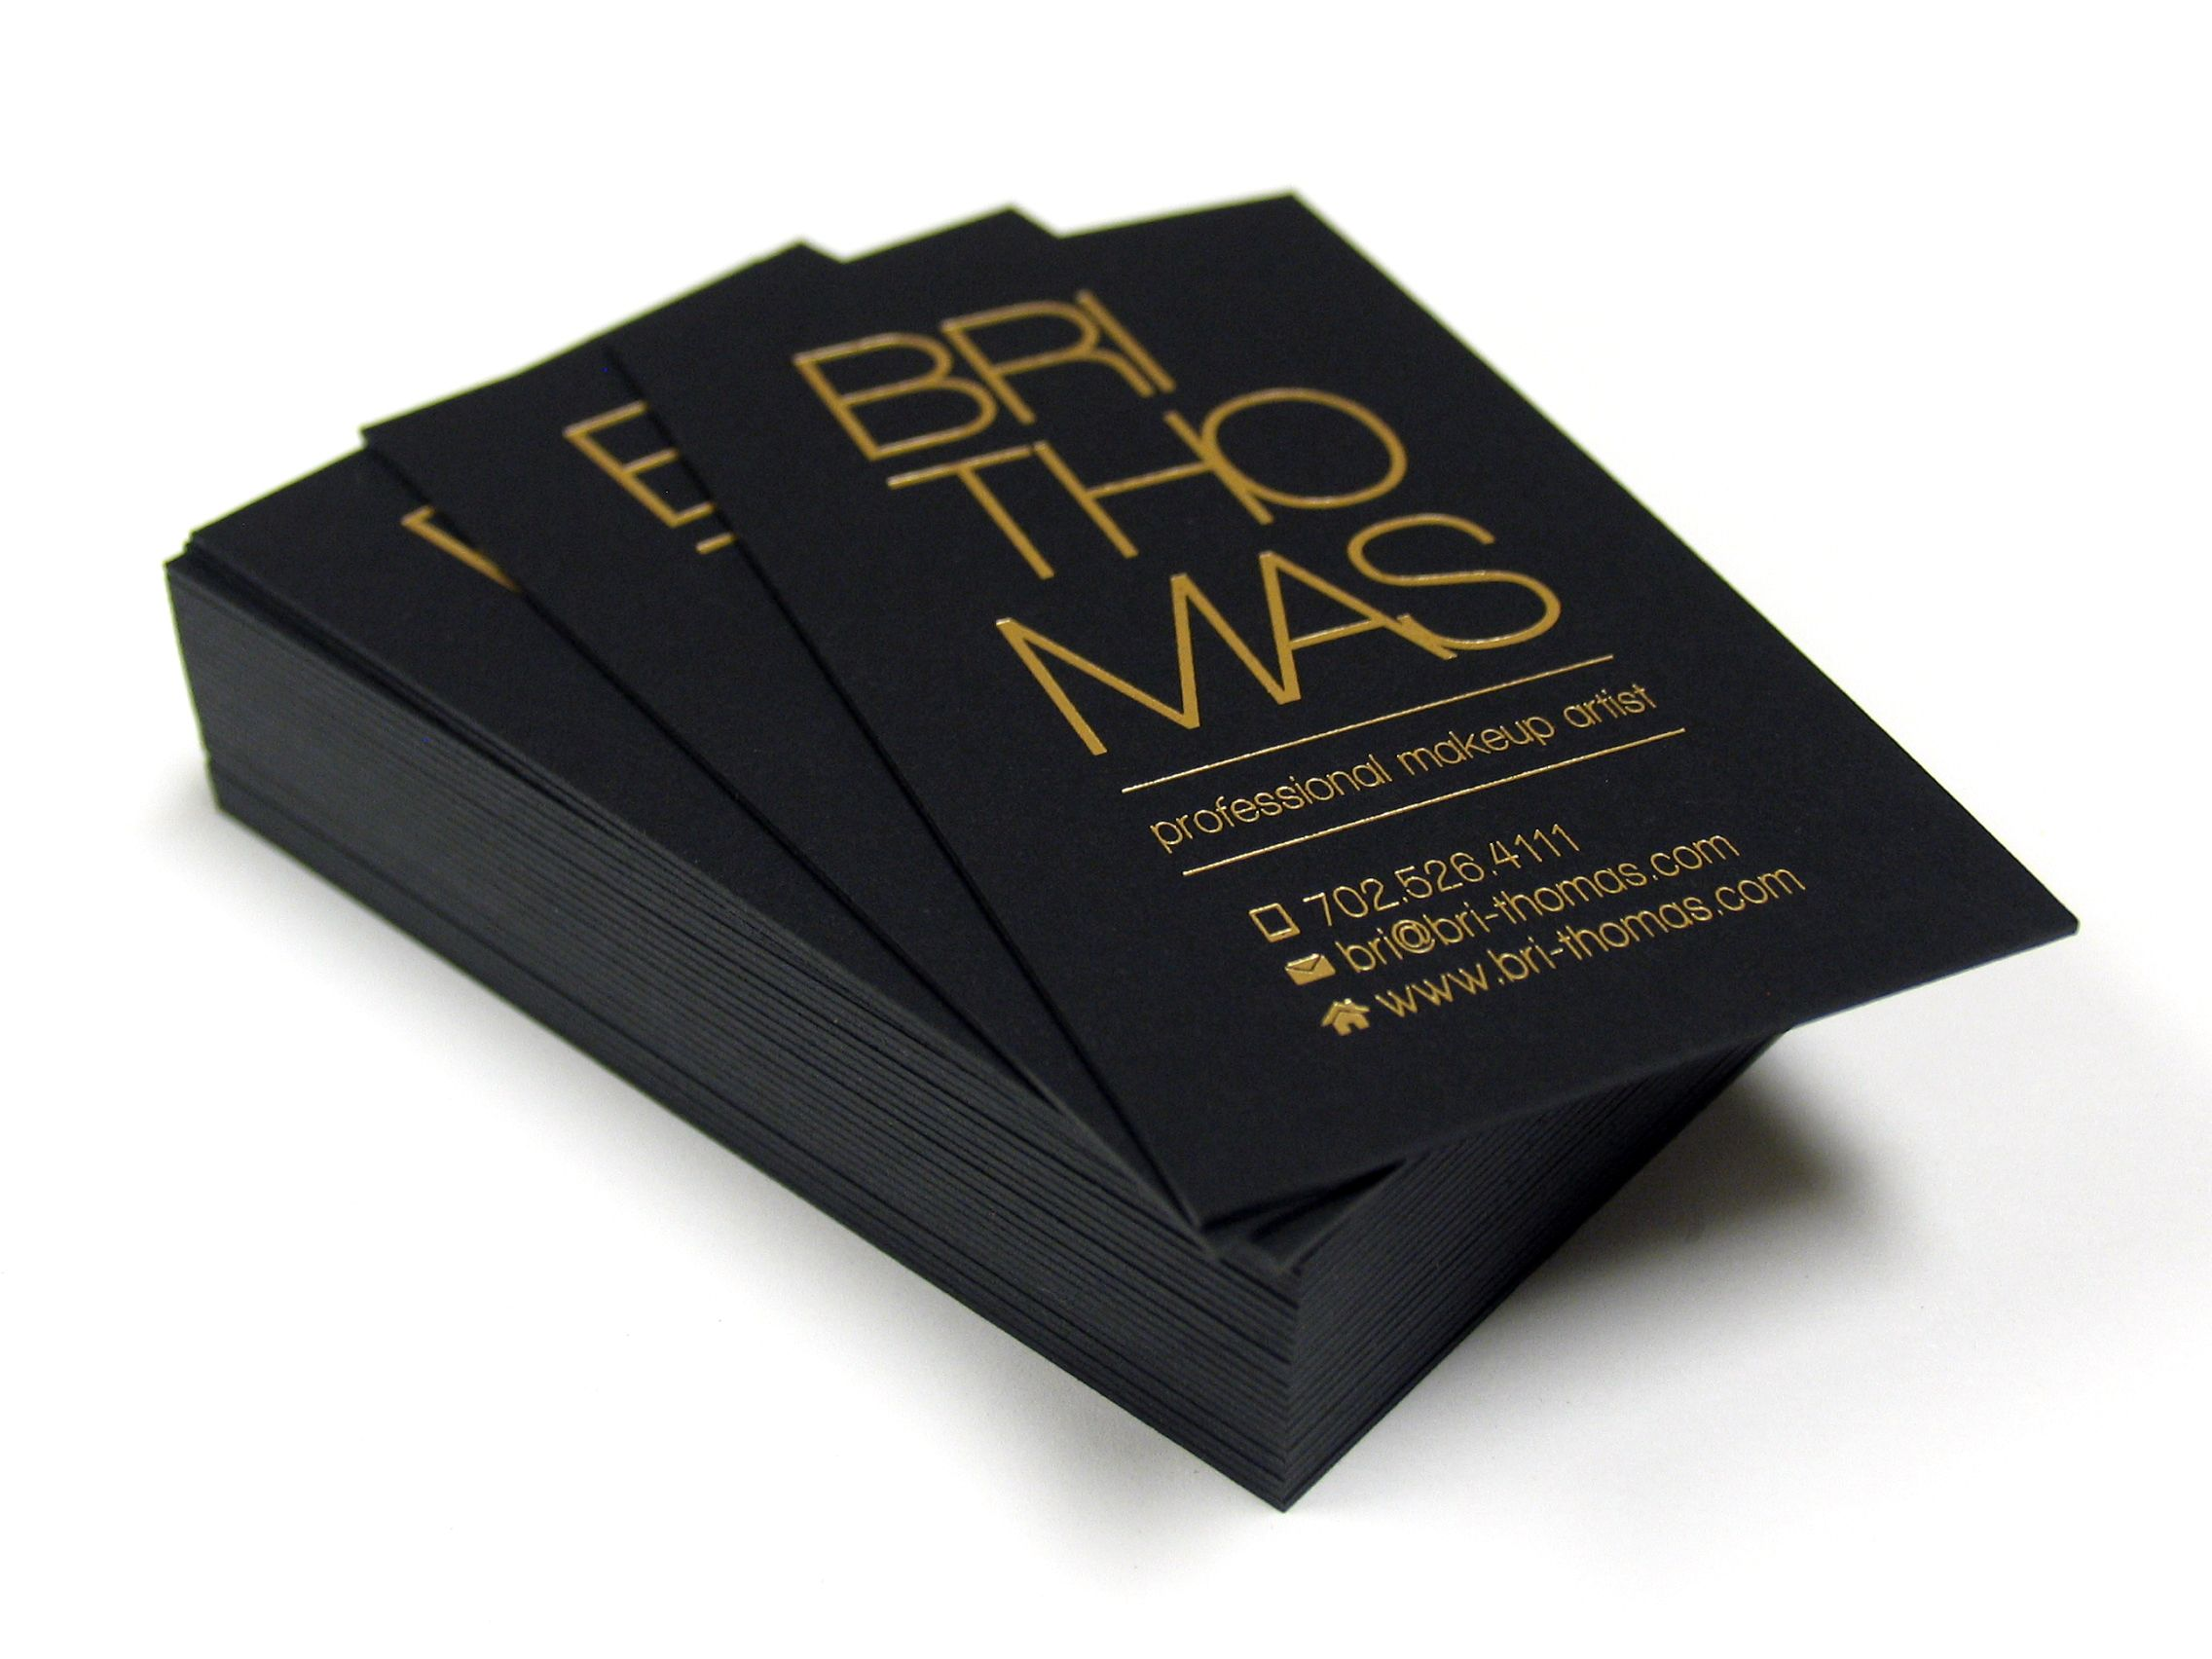 Black business cards matte gold foil 700gsm black paper 34pt black business cards matte gold foil 700gsm black paper 34pt thickness www colourmoves Image collections